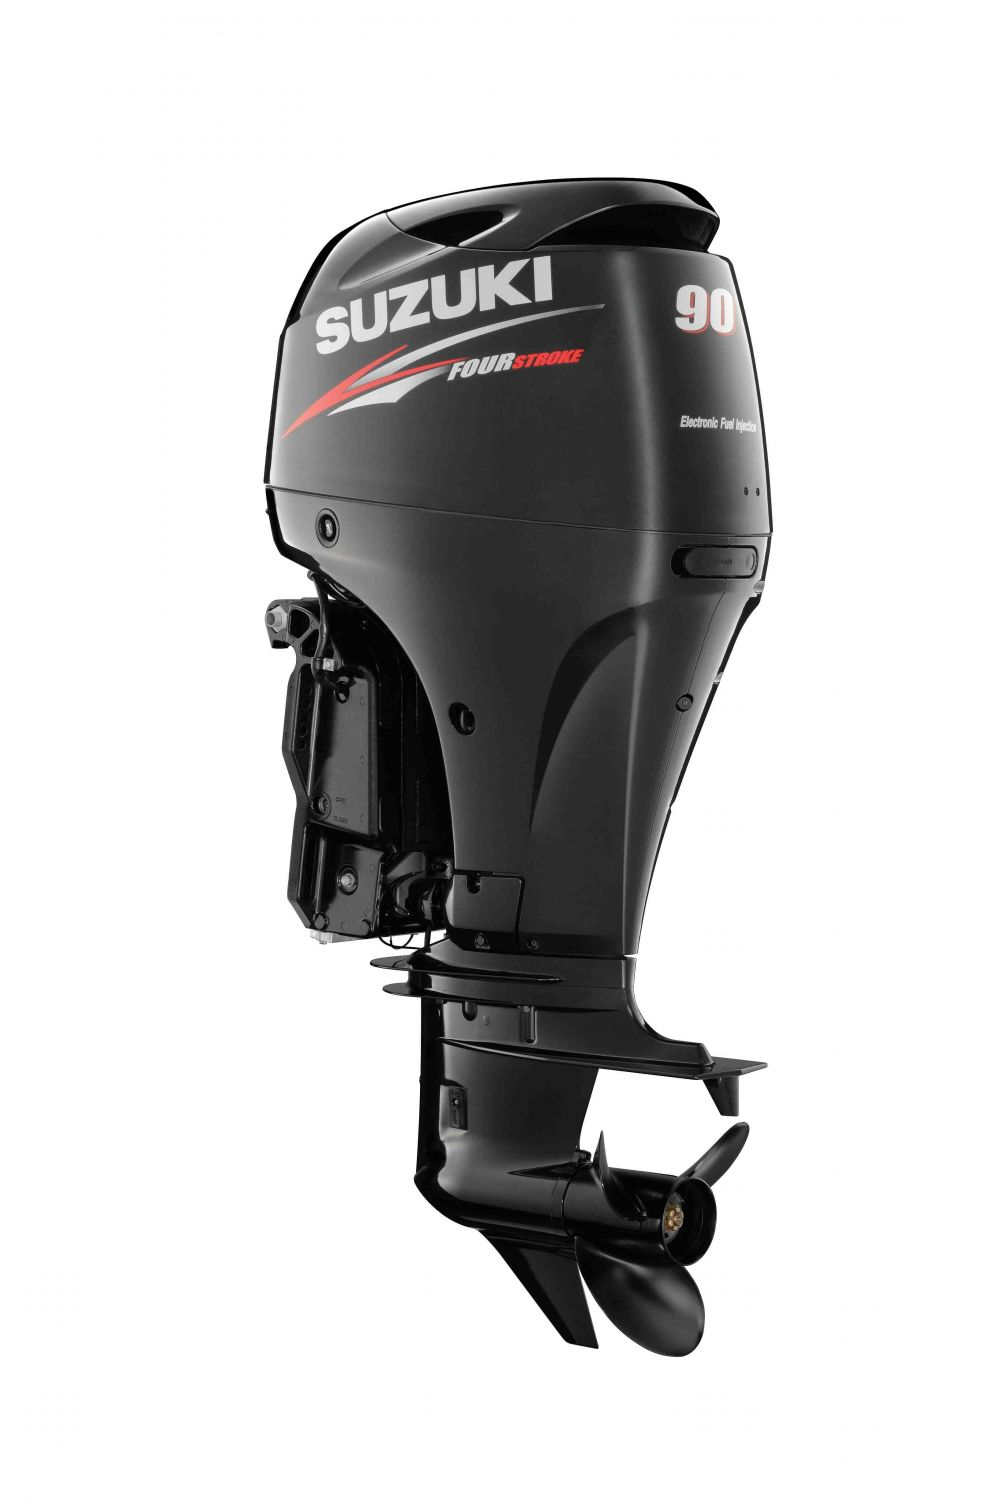 Suzuki DF90A Four stroke marine outboard engine